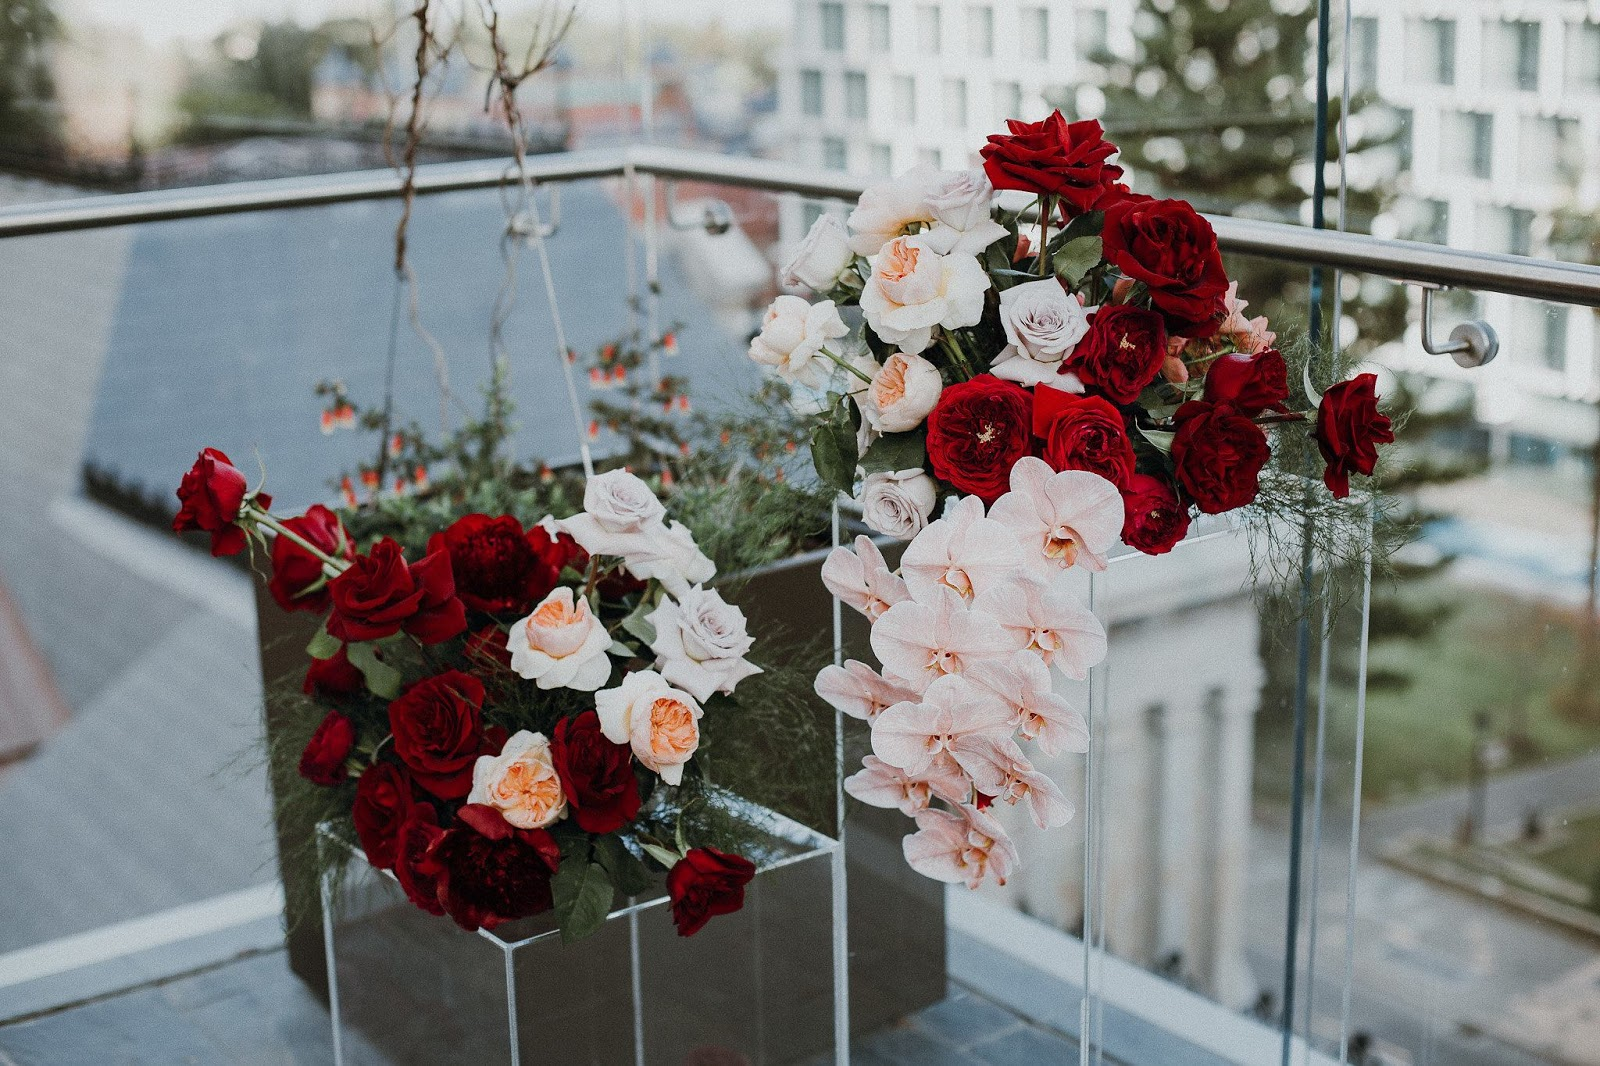 peggy saas perth wedding photography floral designer wedding stylist planner to the aisle australia